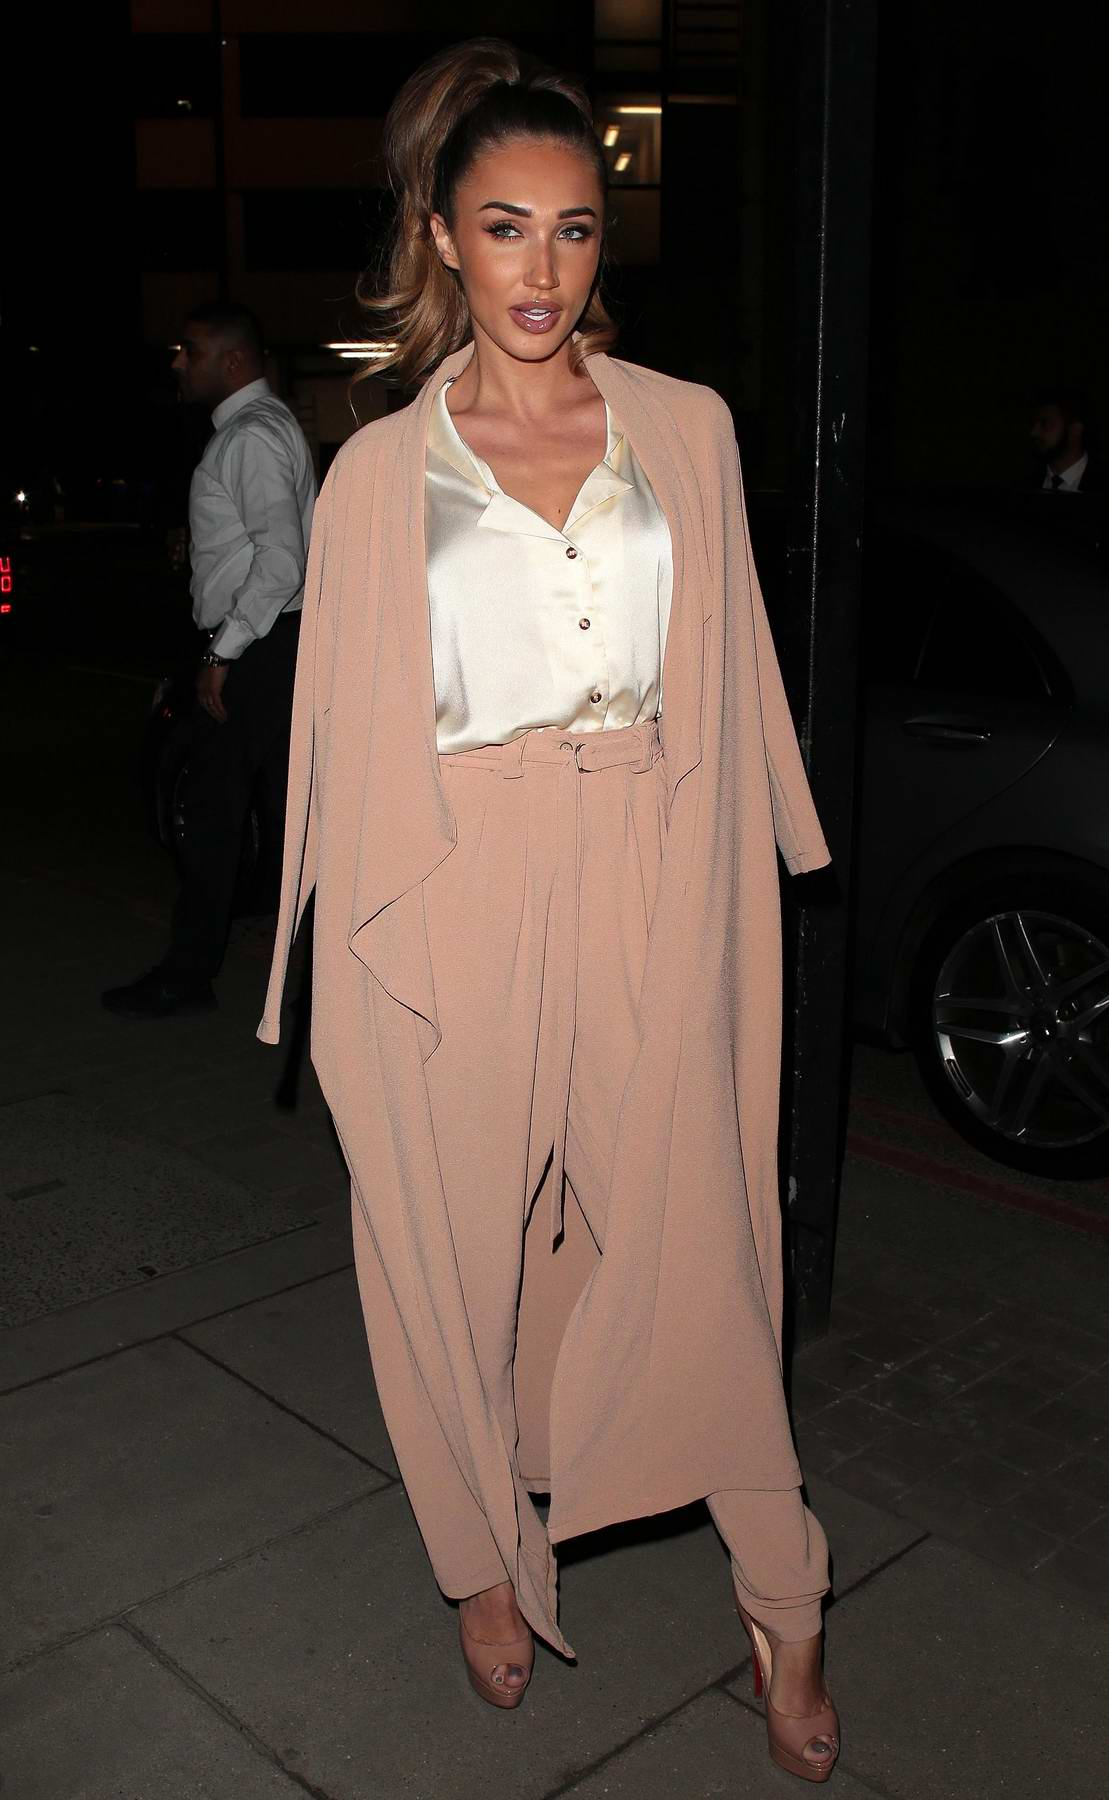 Megan McKenna at Fabulous Magazine 10th birthday party in London